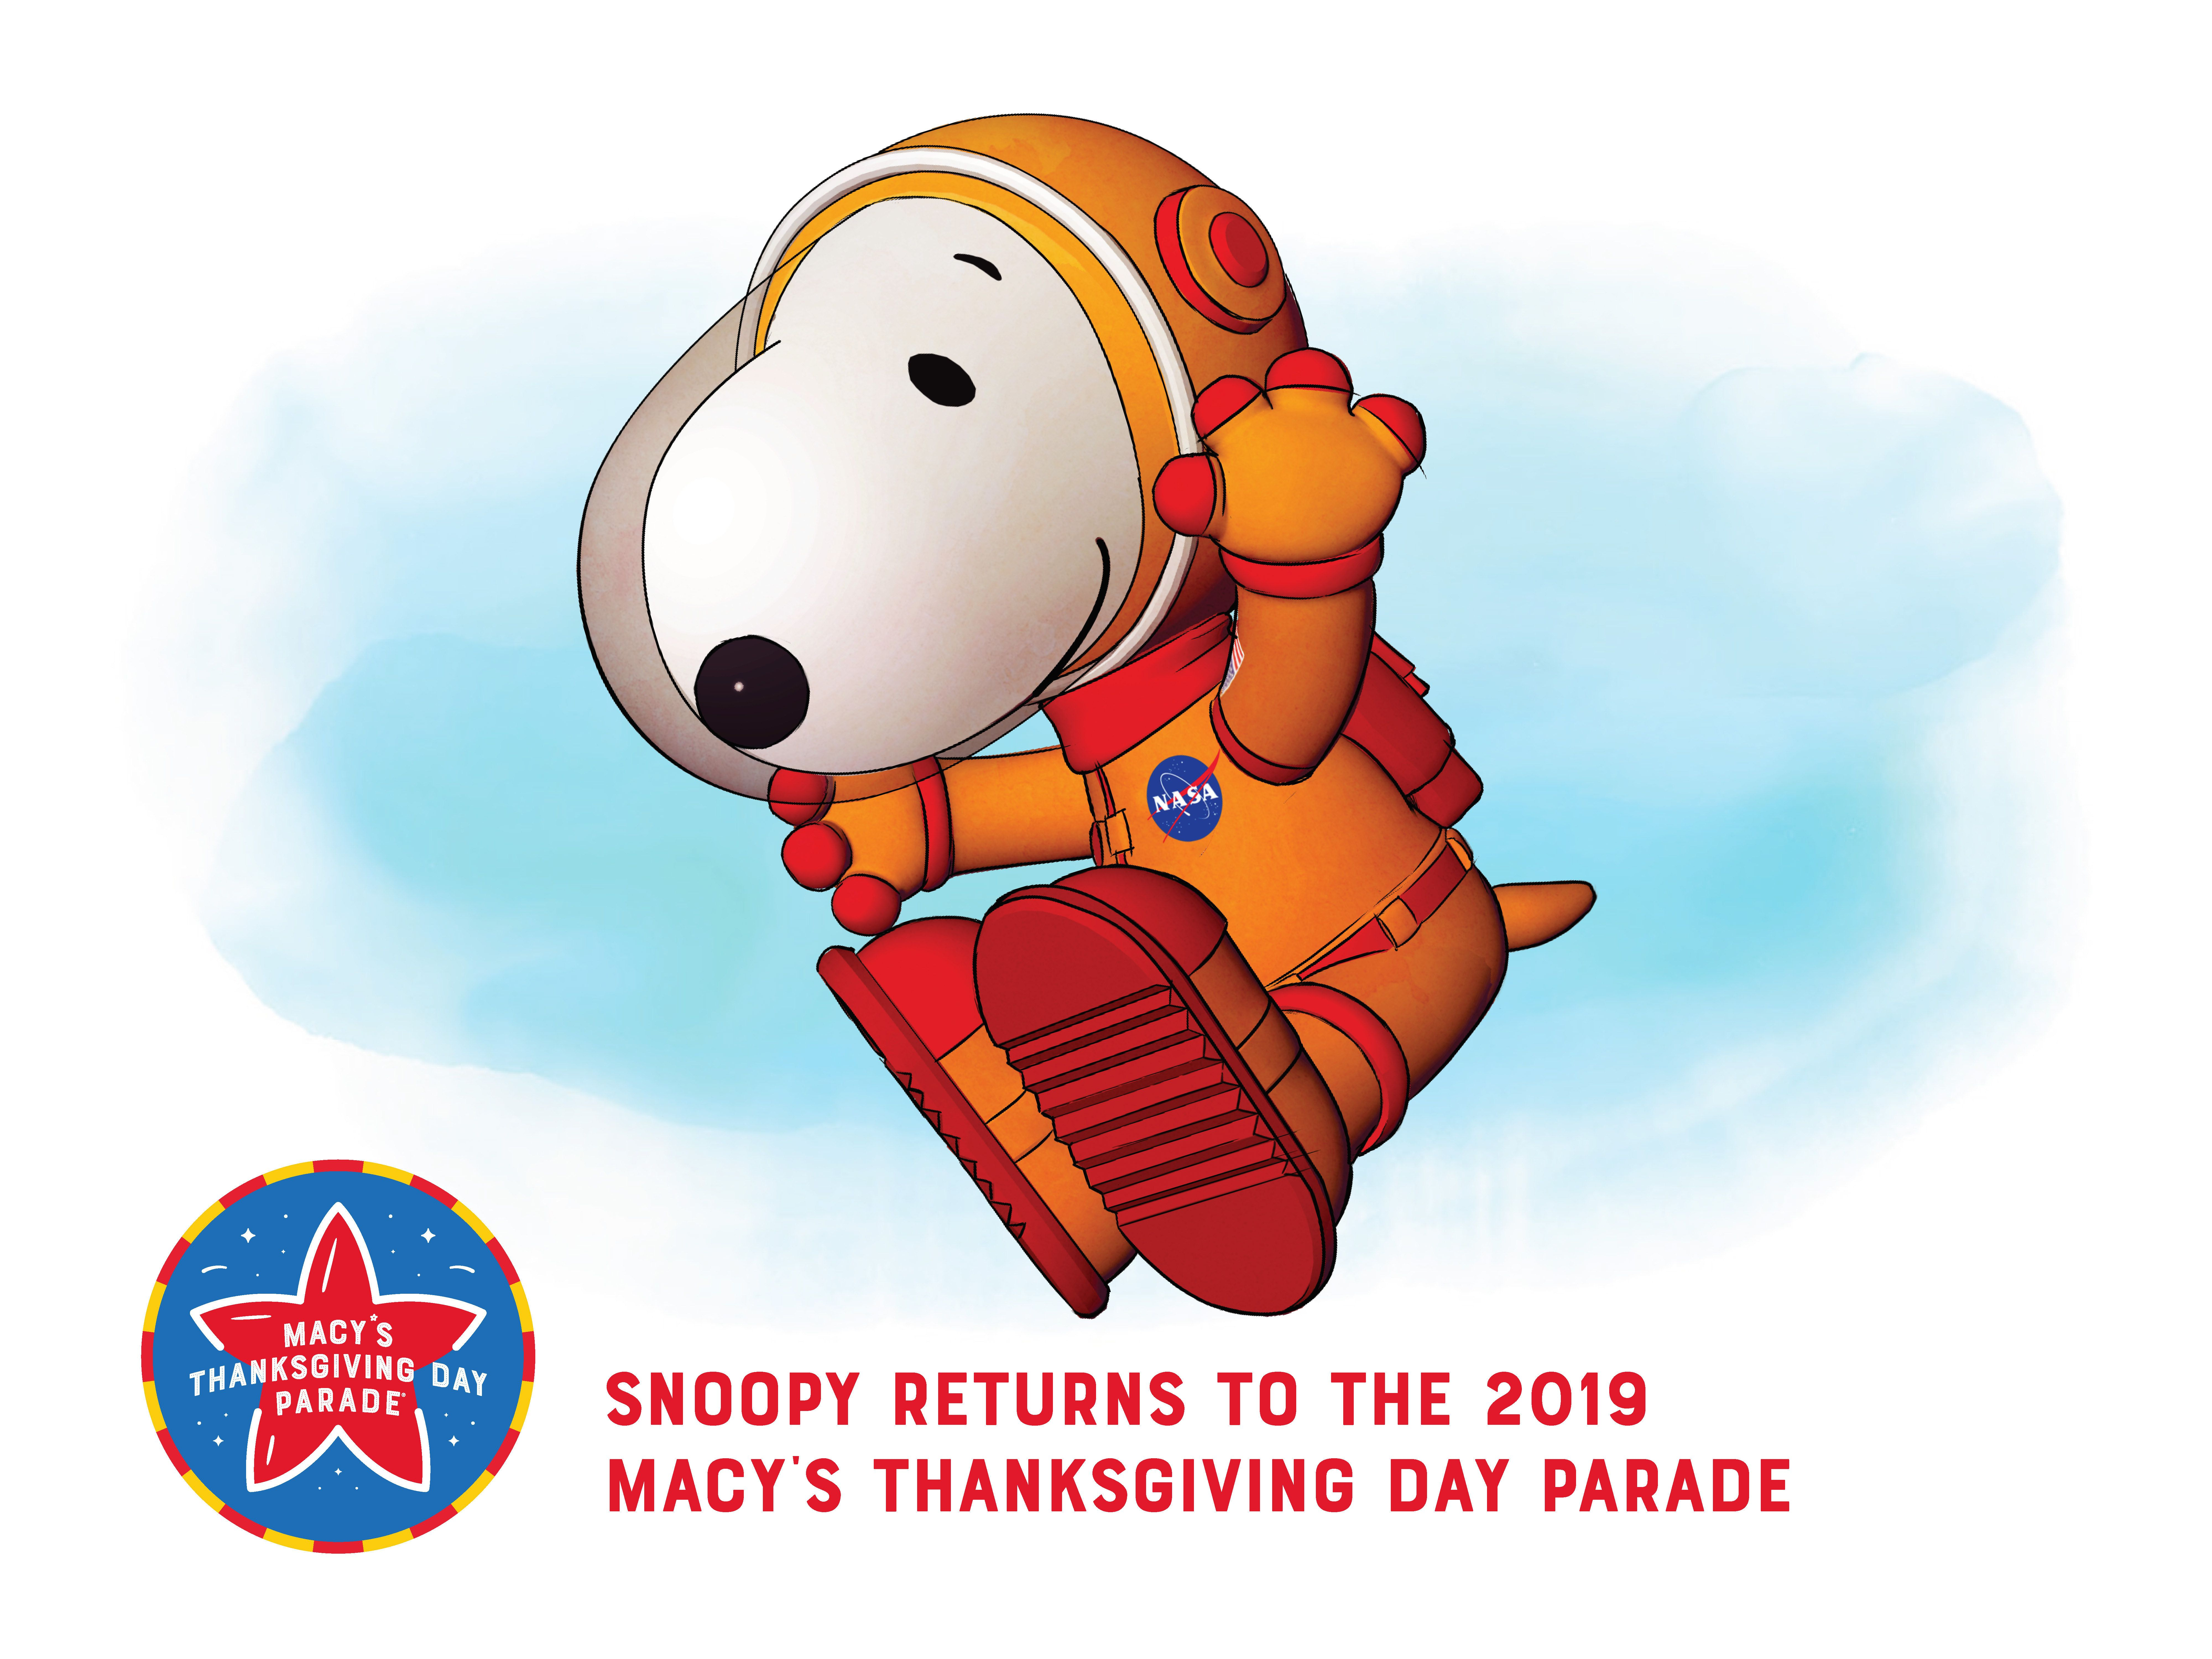 Snoopy Is Cleared For Take Off Thanksgiving Day Parade Macy S Thanksgiving Day Parade Snoopy